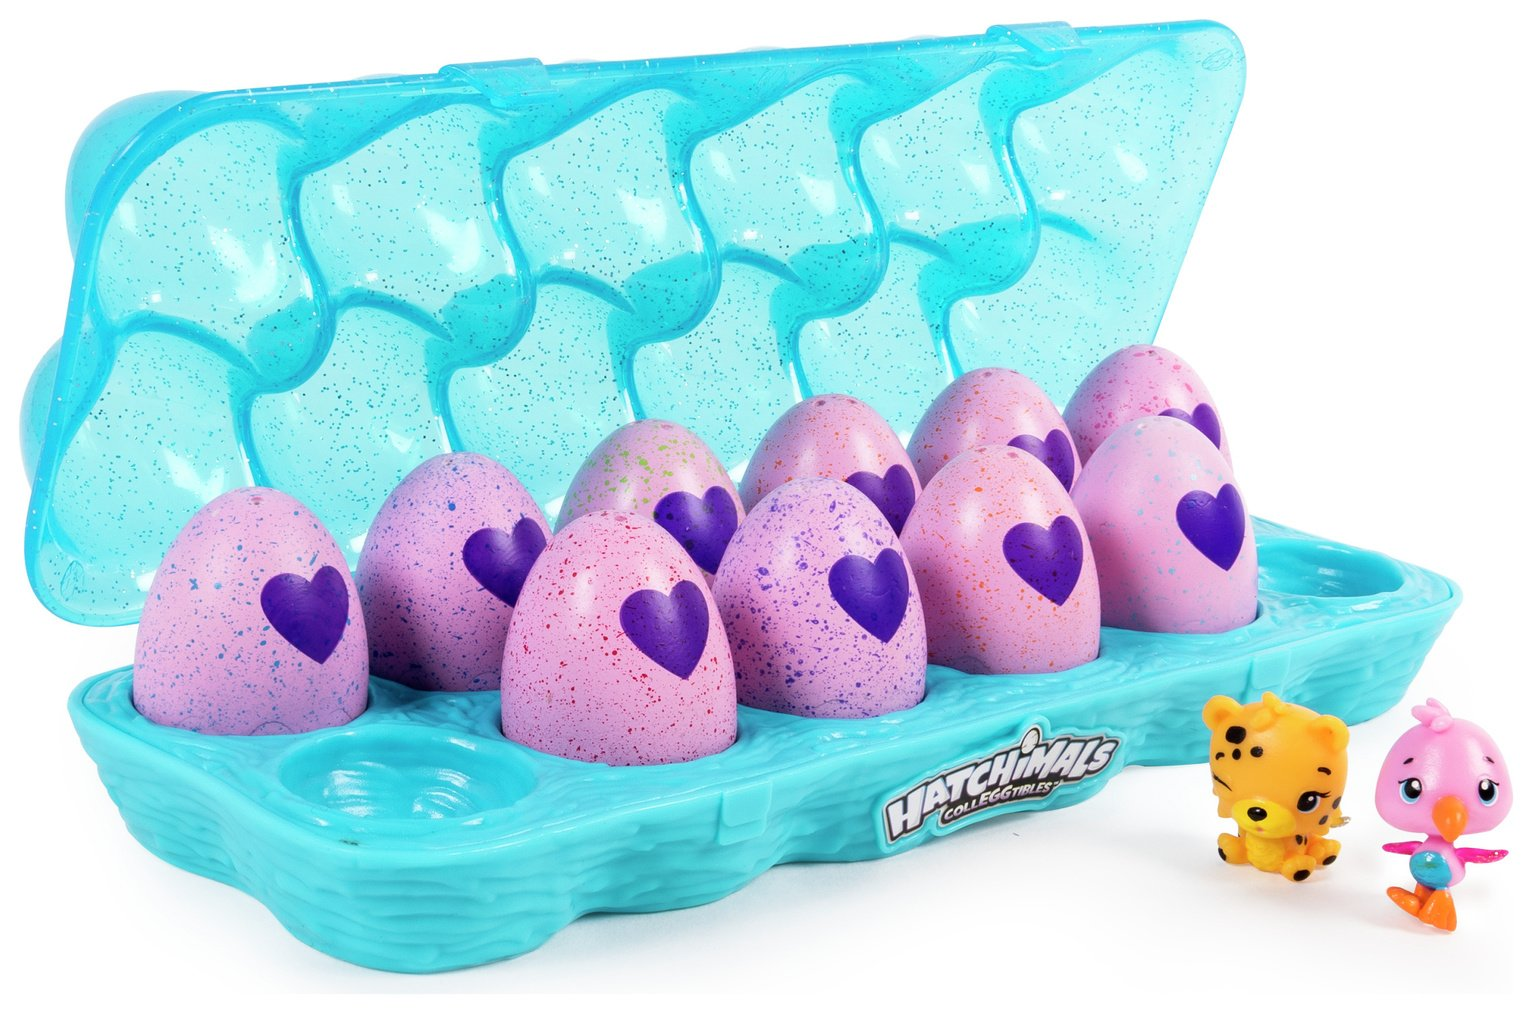 Hatchimals CollEGGtibles Egg Carton - 12 Pack